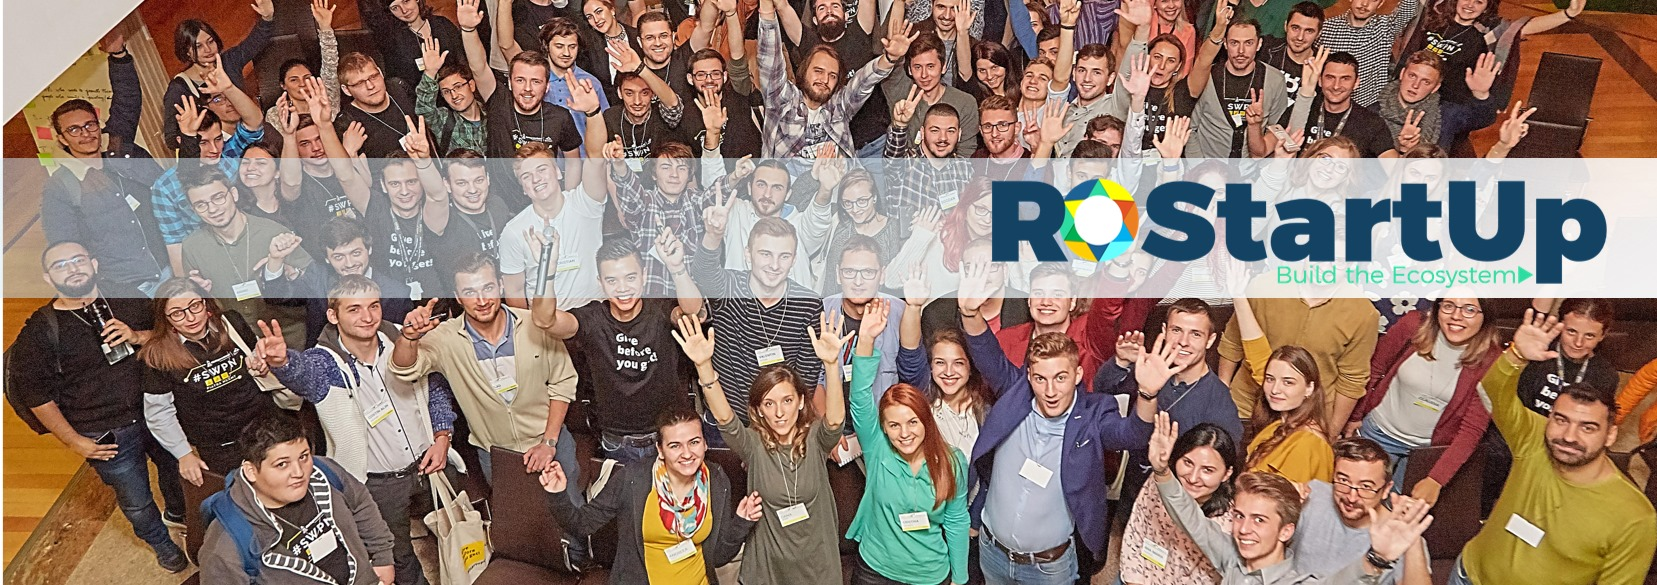 rostartup cover photo